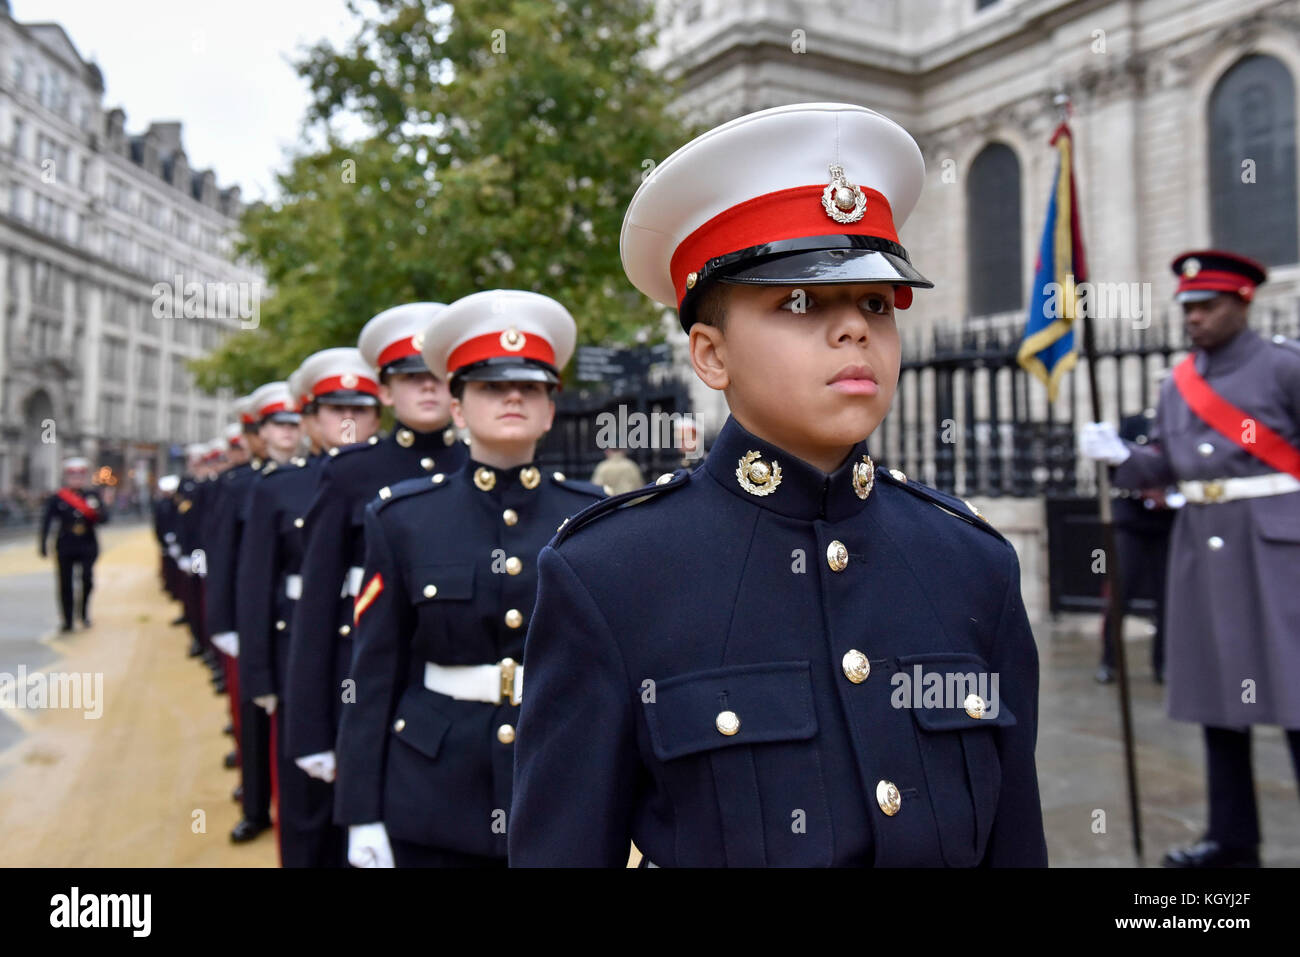 London, UK. 11th Nov, 2017. Cadets line up outside St. Paul's Cathedral during The Lord Mayor's Show, the oldest Stock Photo